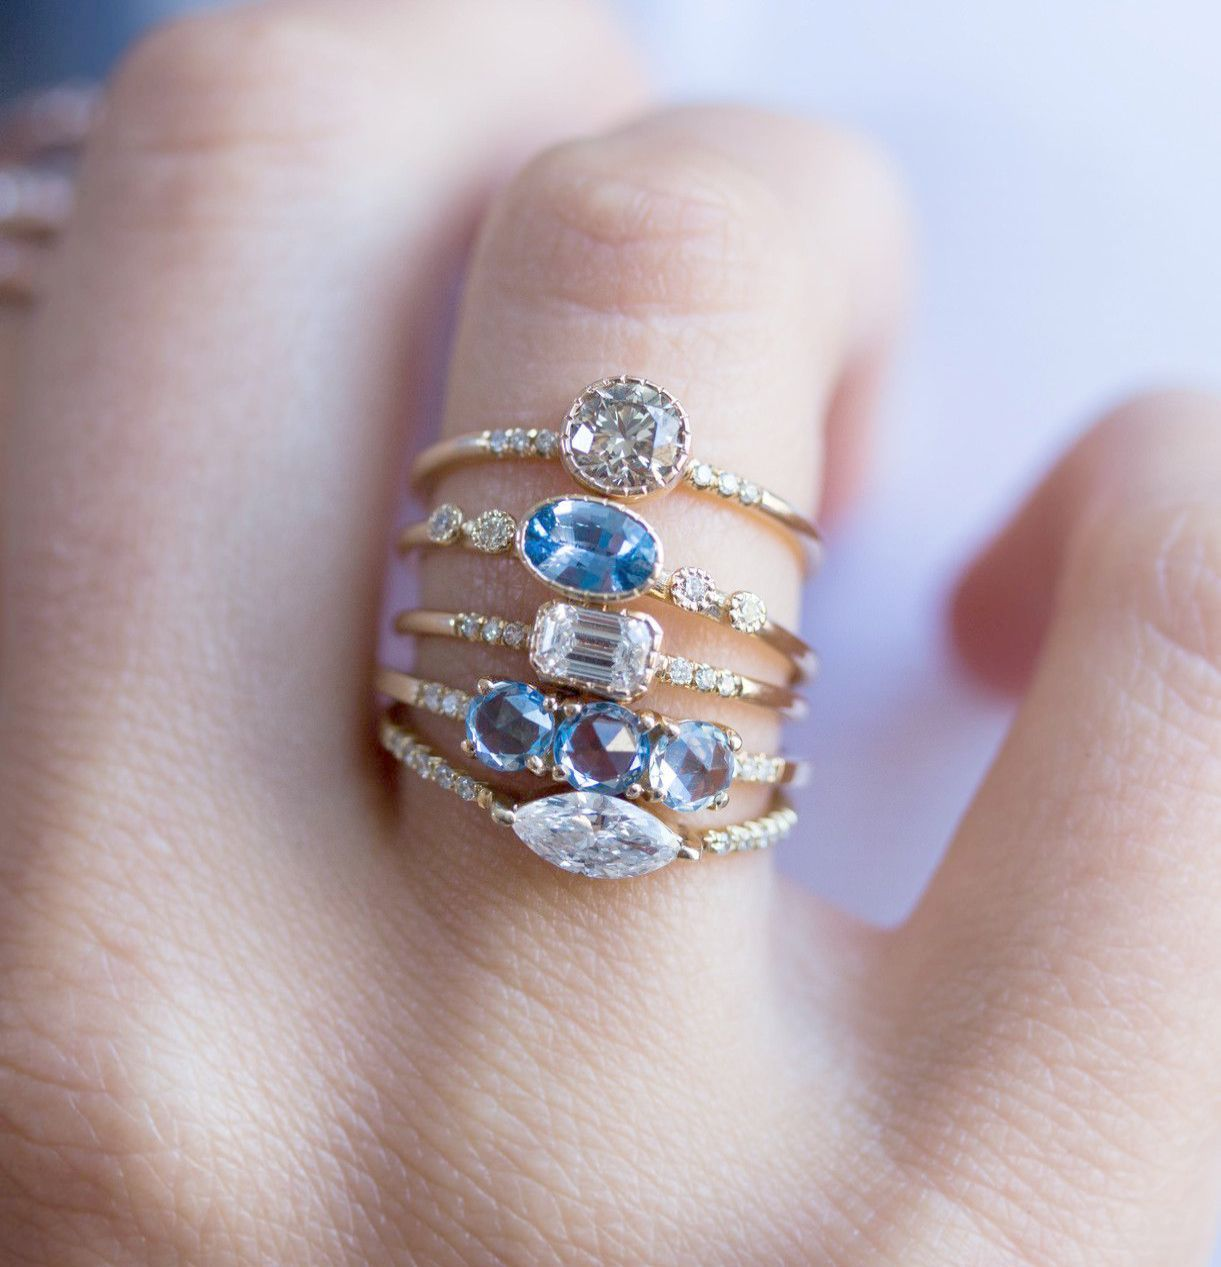 Pin on Sapphire Rings